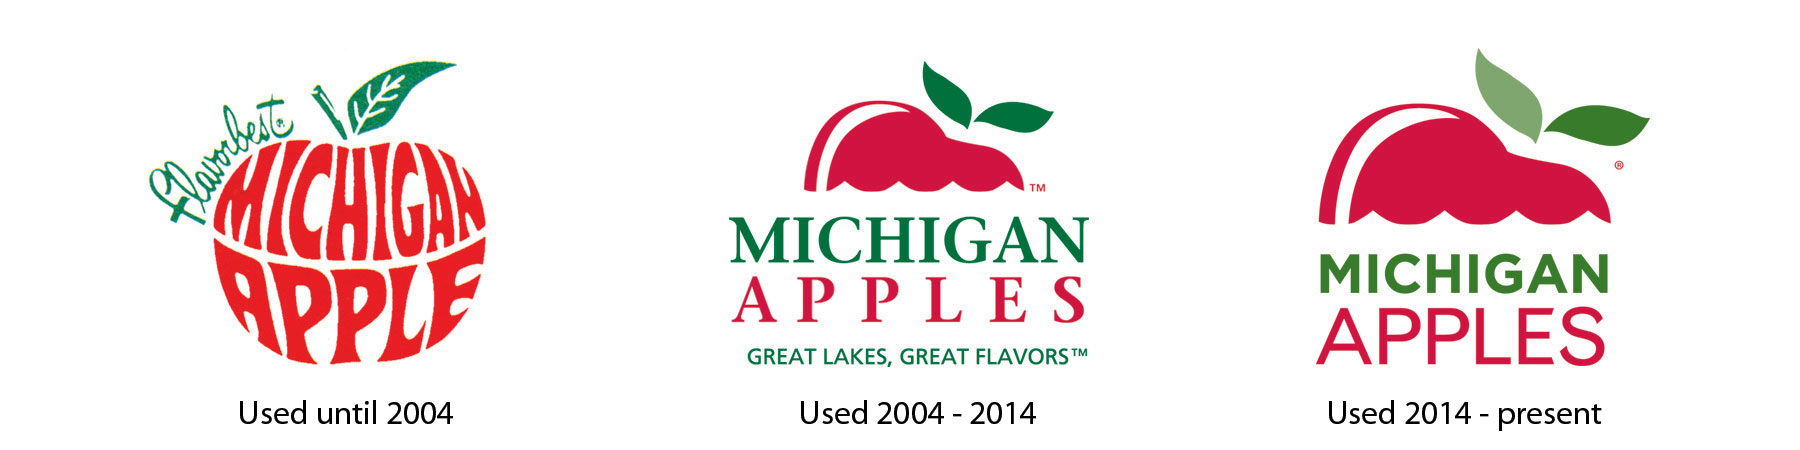 Michigan Apples Logo Evolution